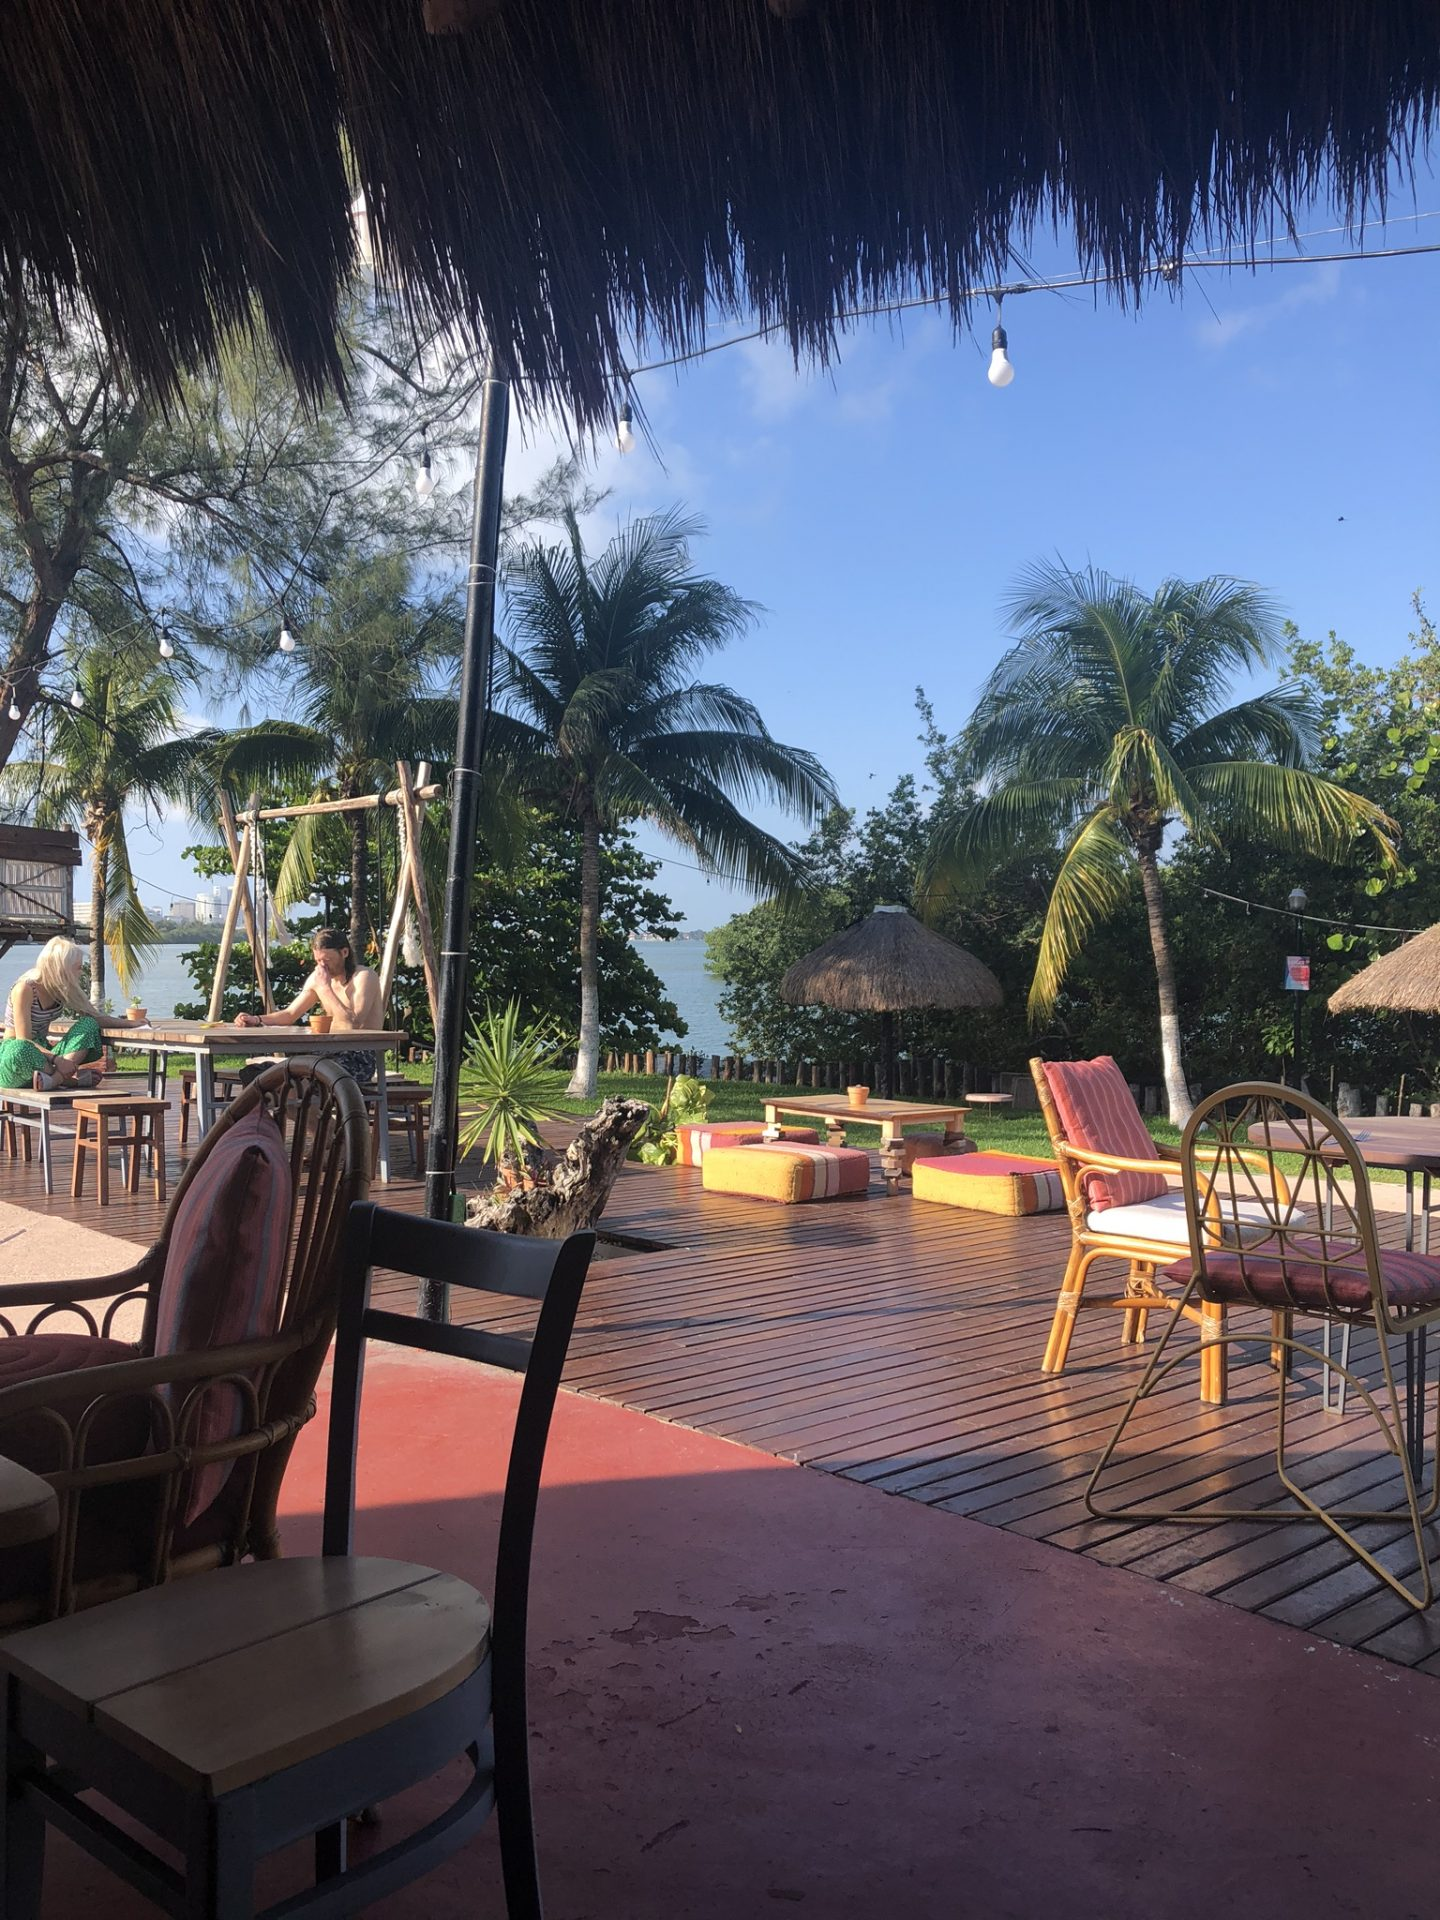 Breakfast at Selina, Cancun in Mexico